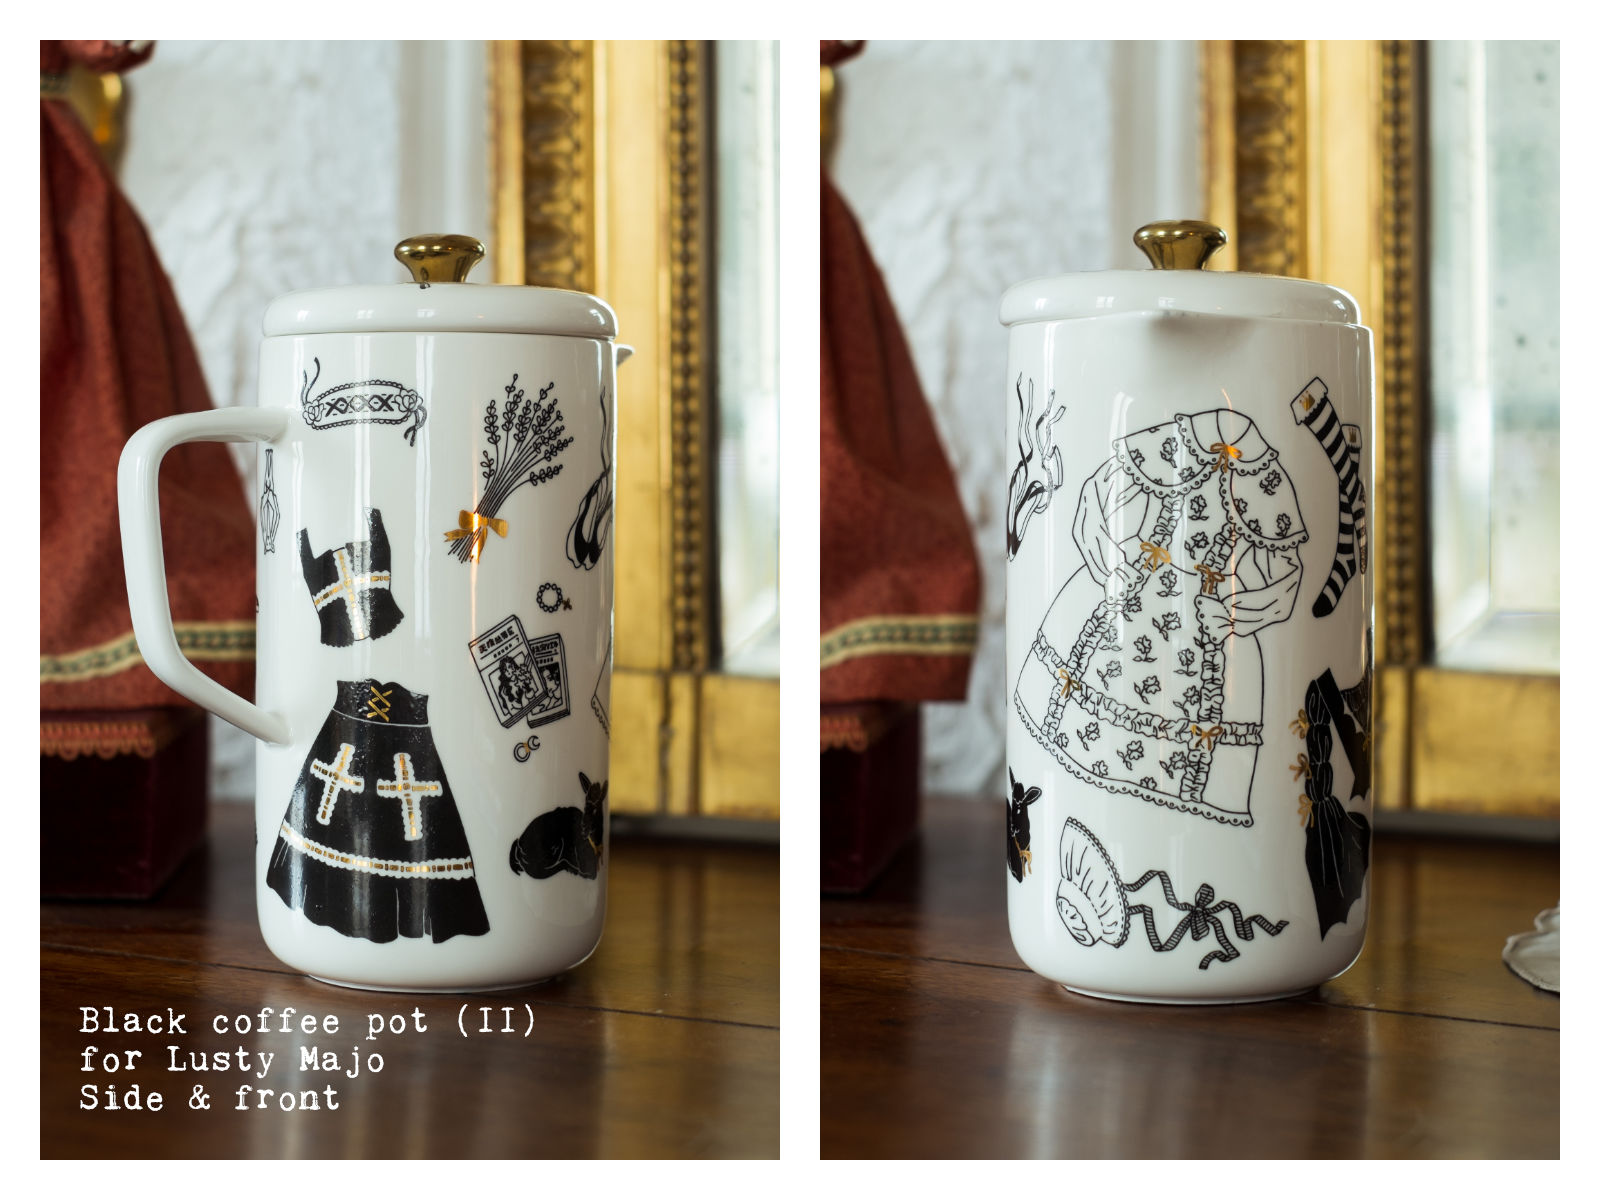 """Side & front of a black coffee pot (II) for Lusty Majo from """"Oldschool Lolita"""", a collection of painted porcelains by messalyn."""